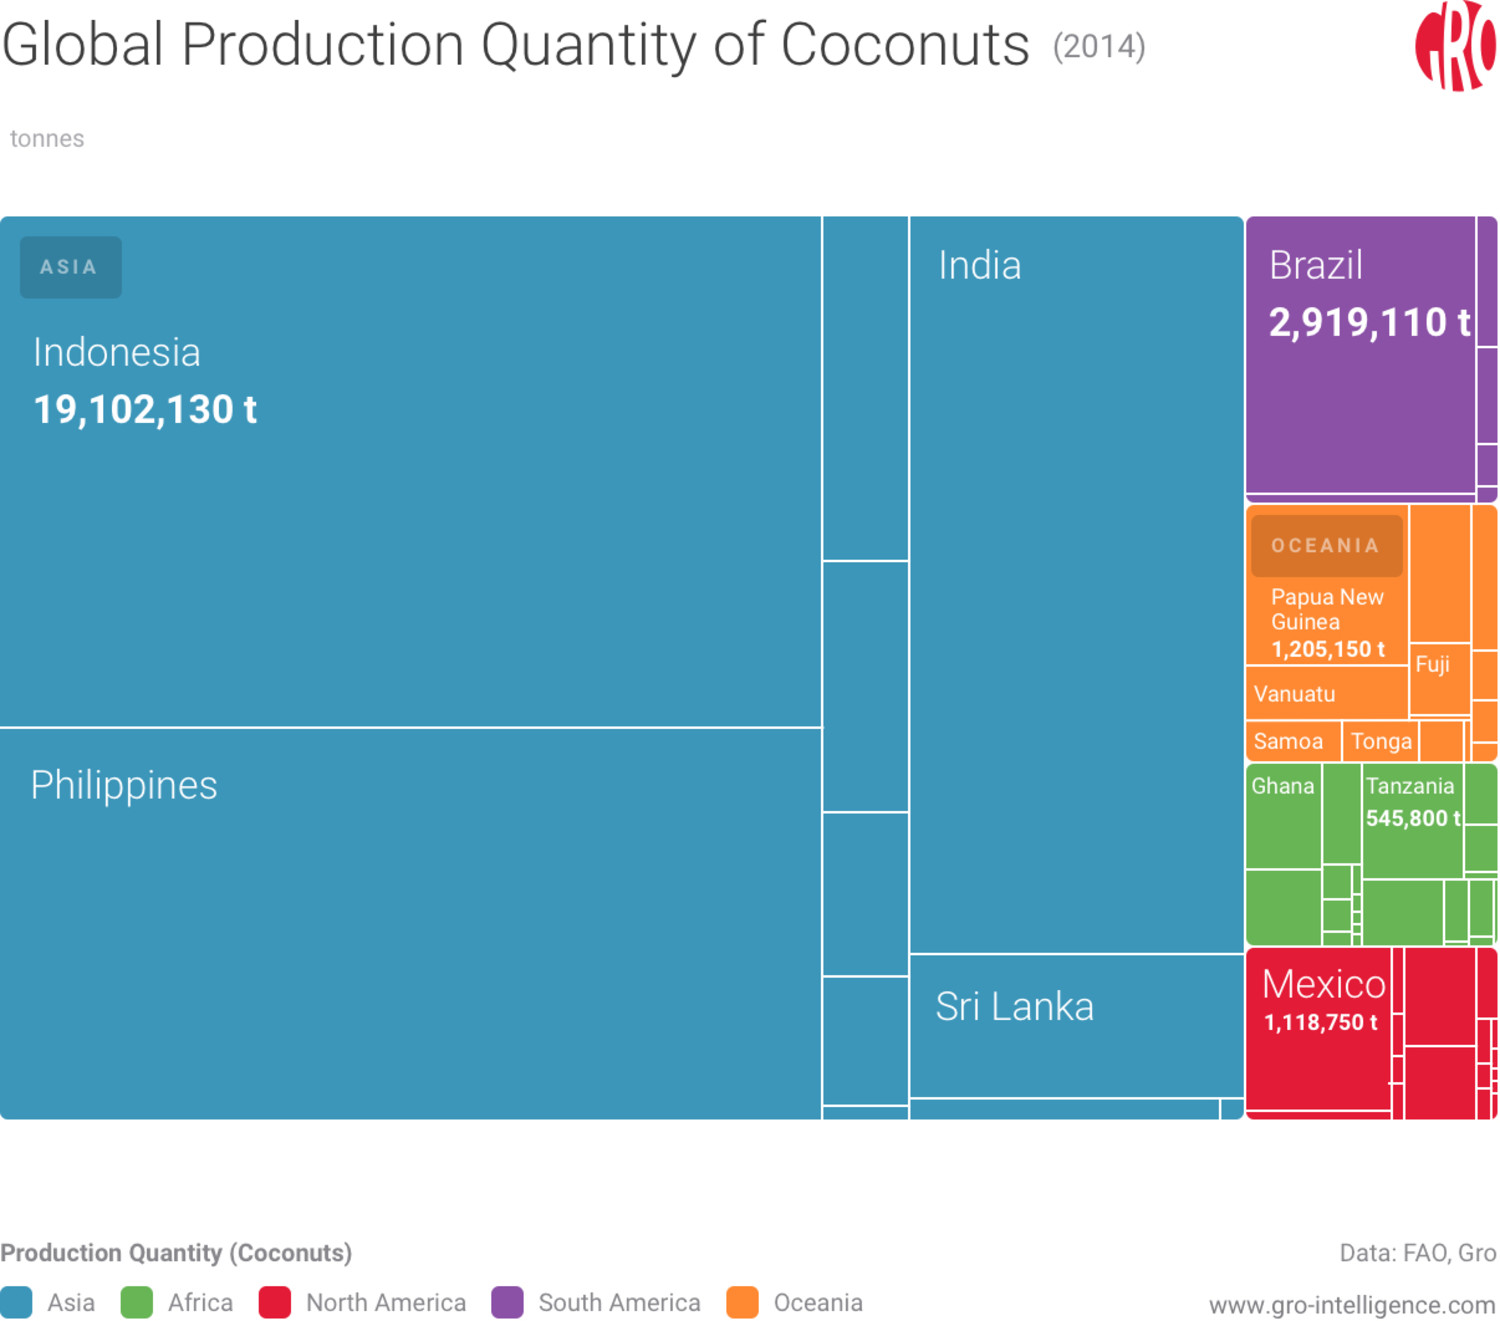 Global coconut production is concentrated in Asia